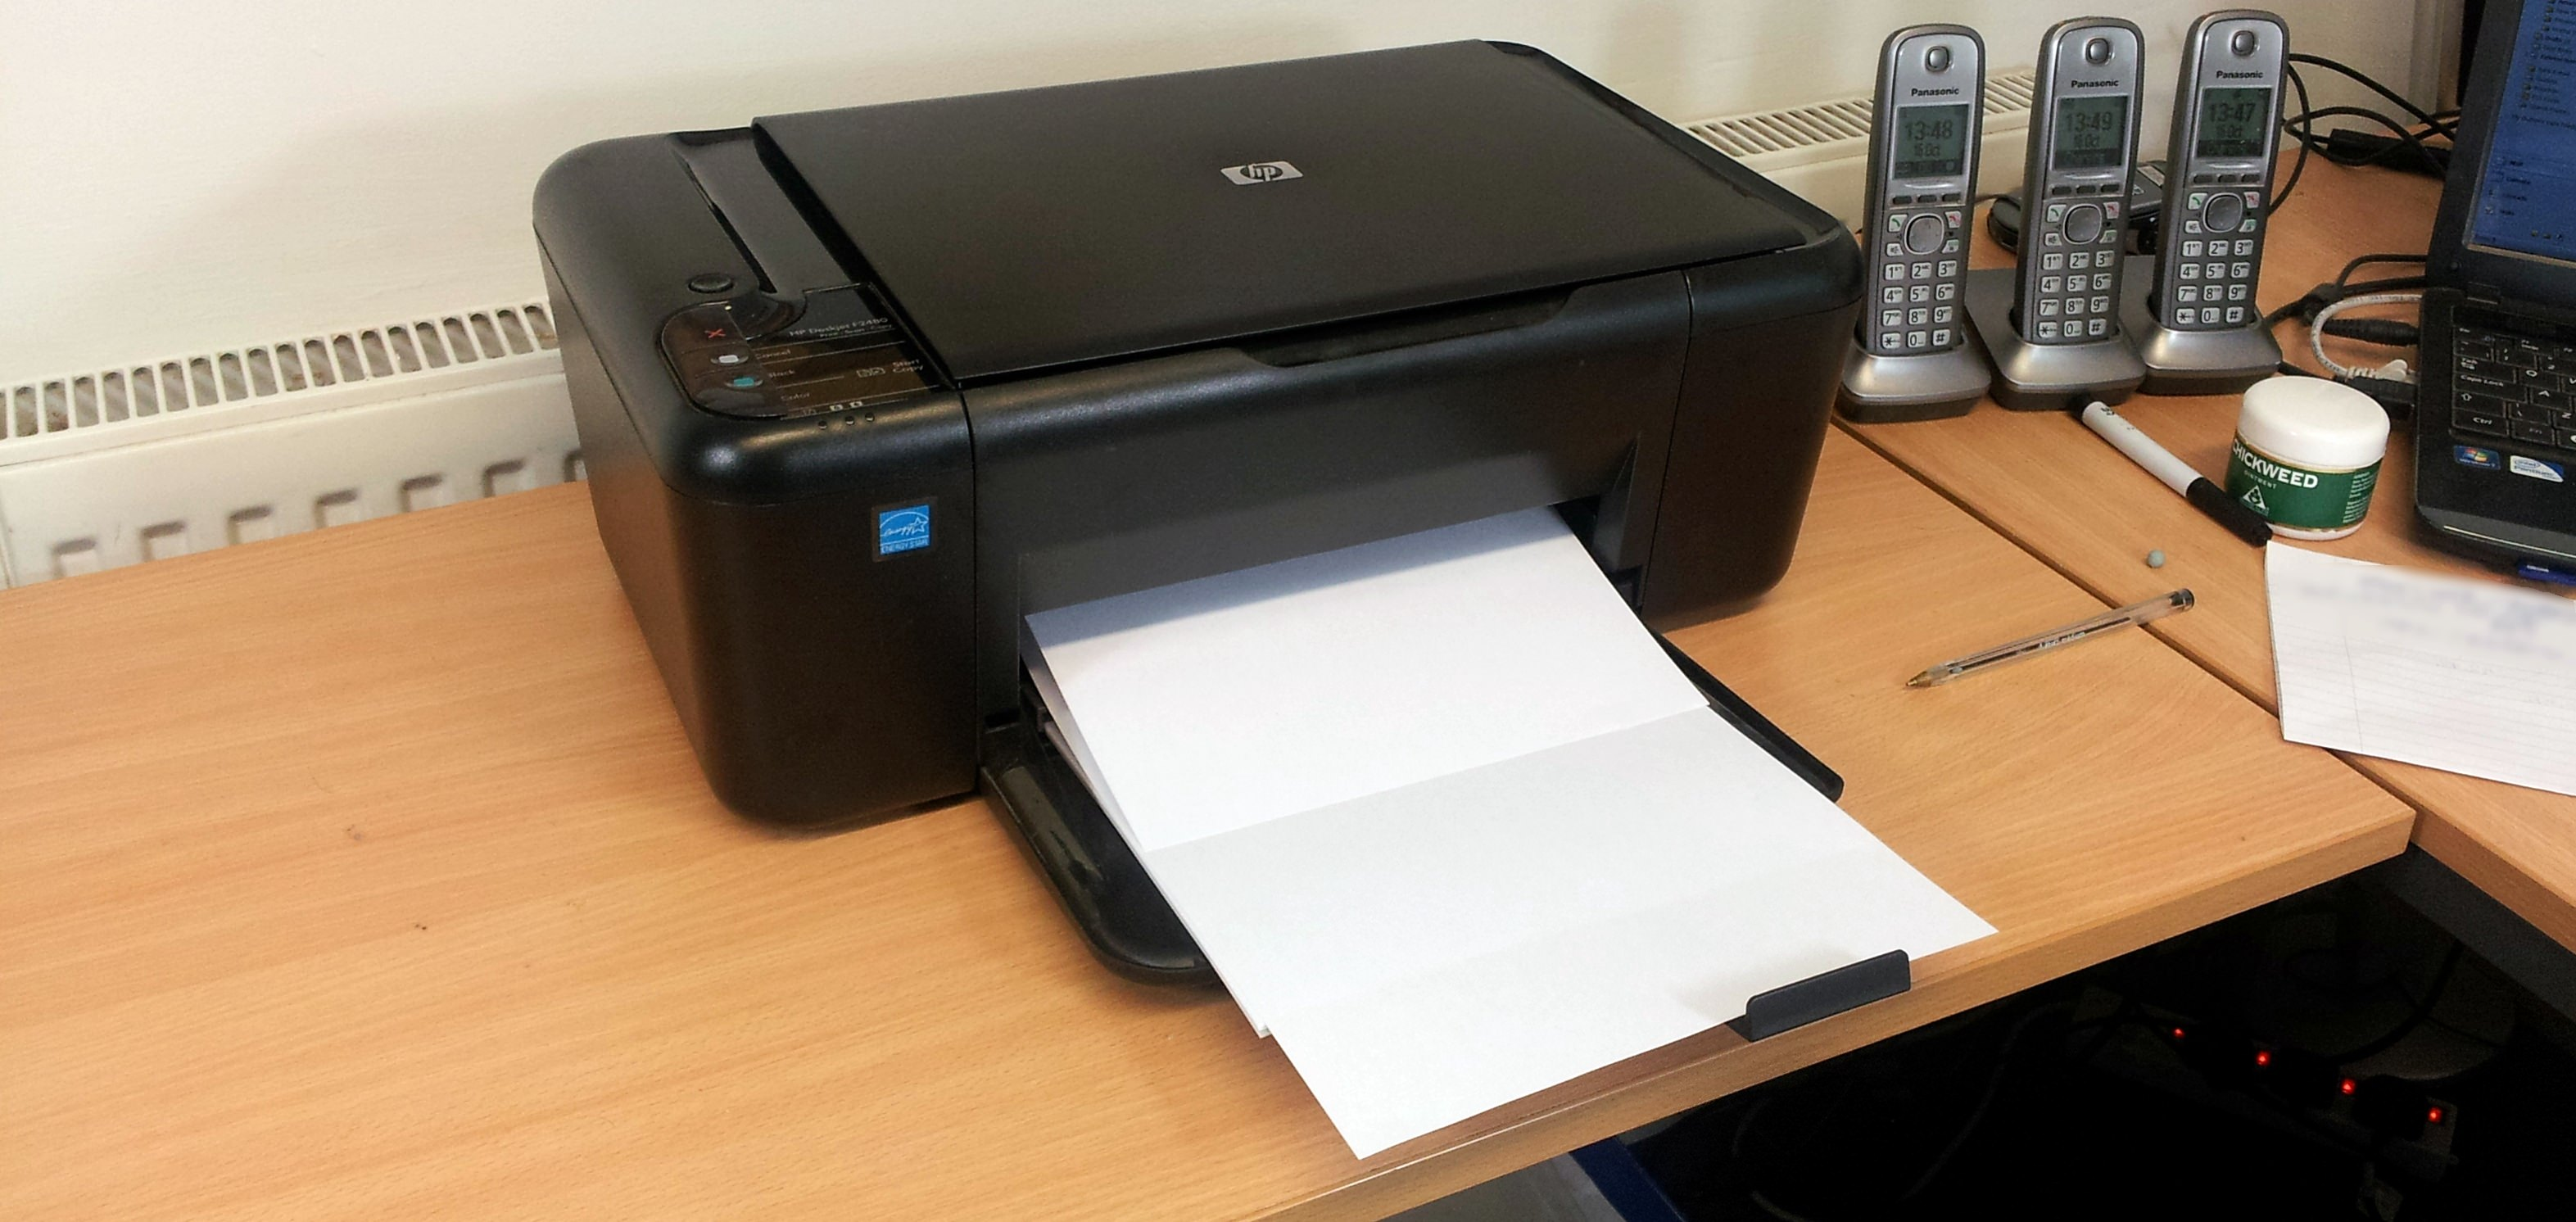 Pages Printing Out Blank One Or More Colours Missing